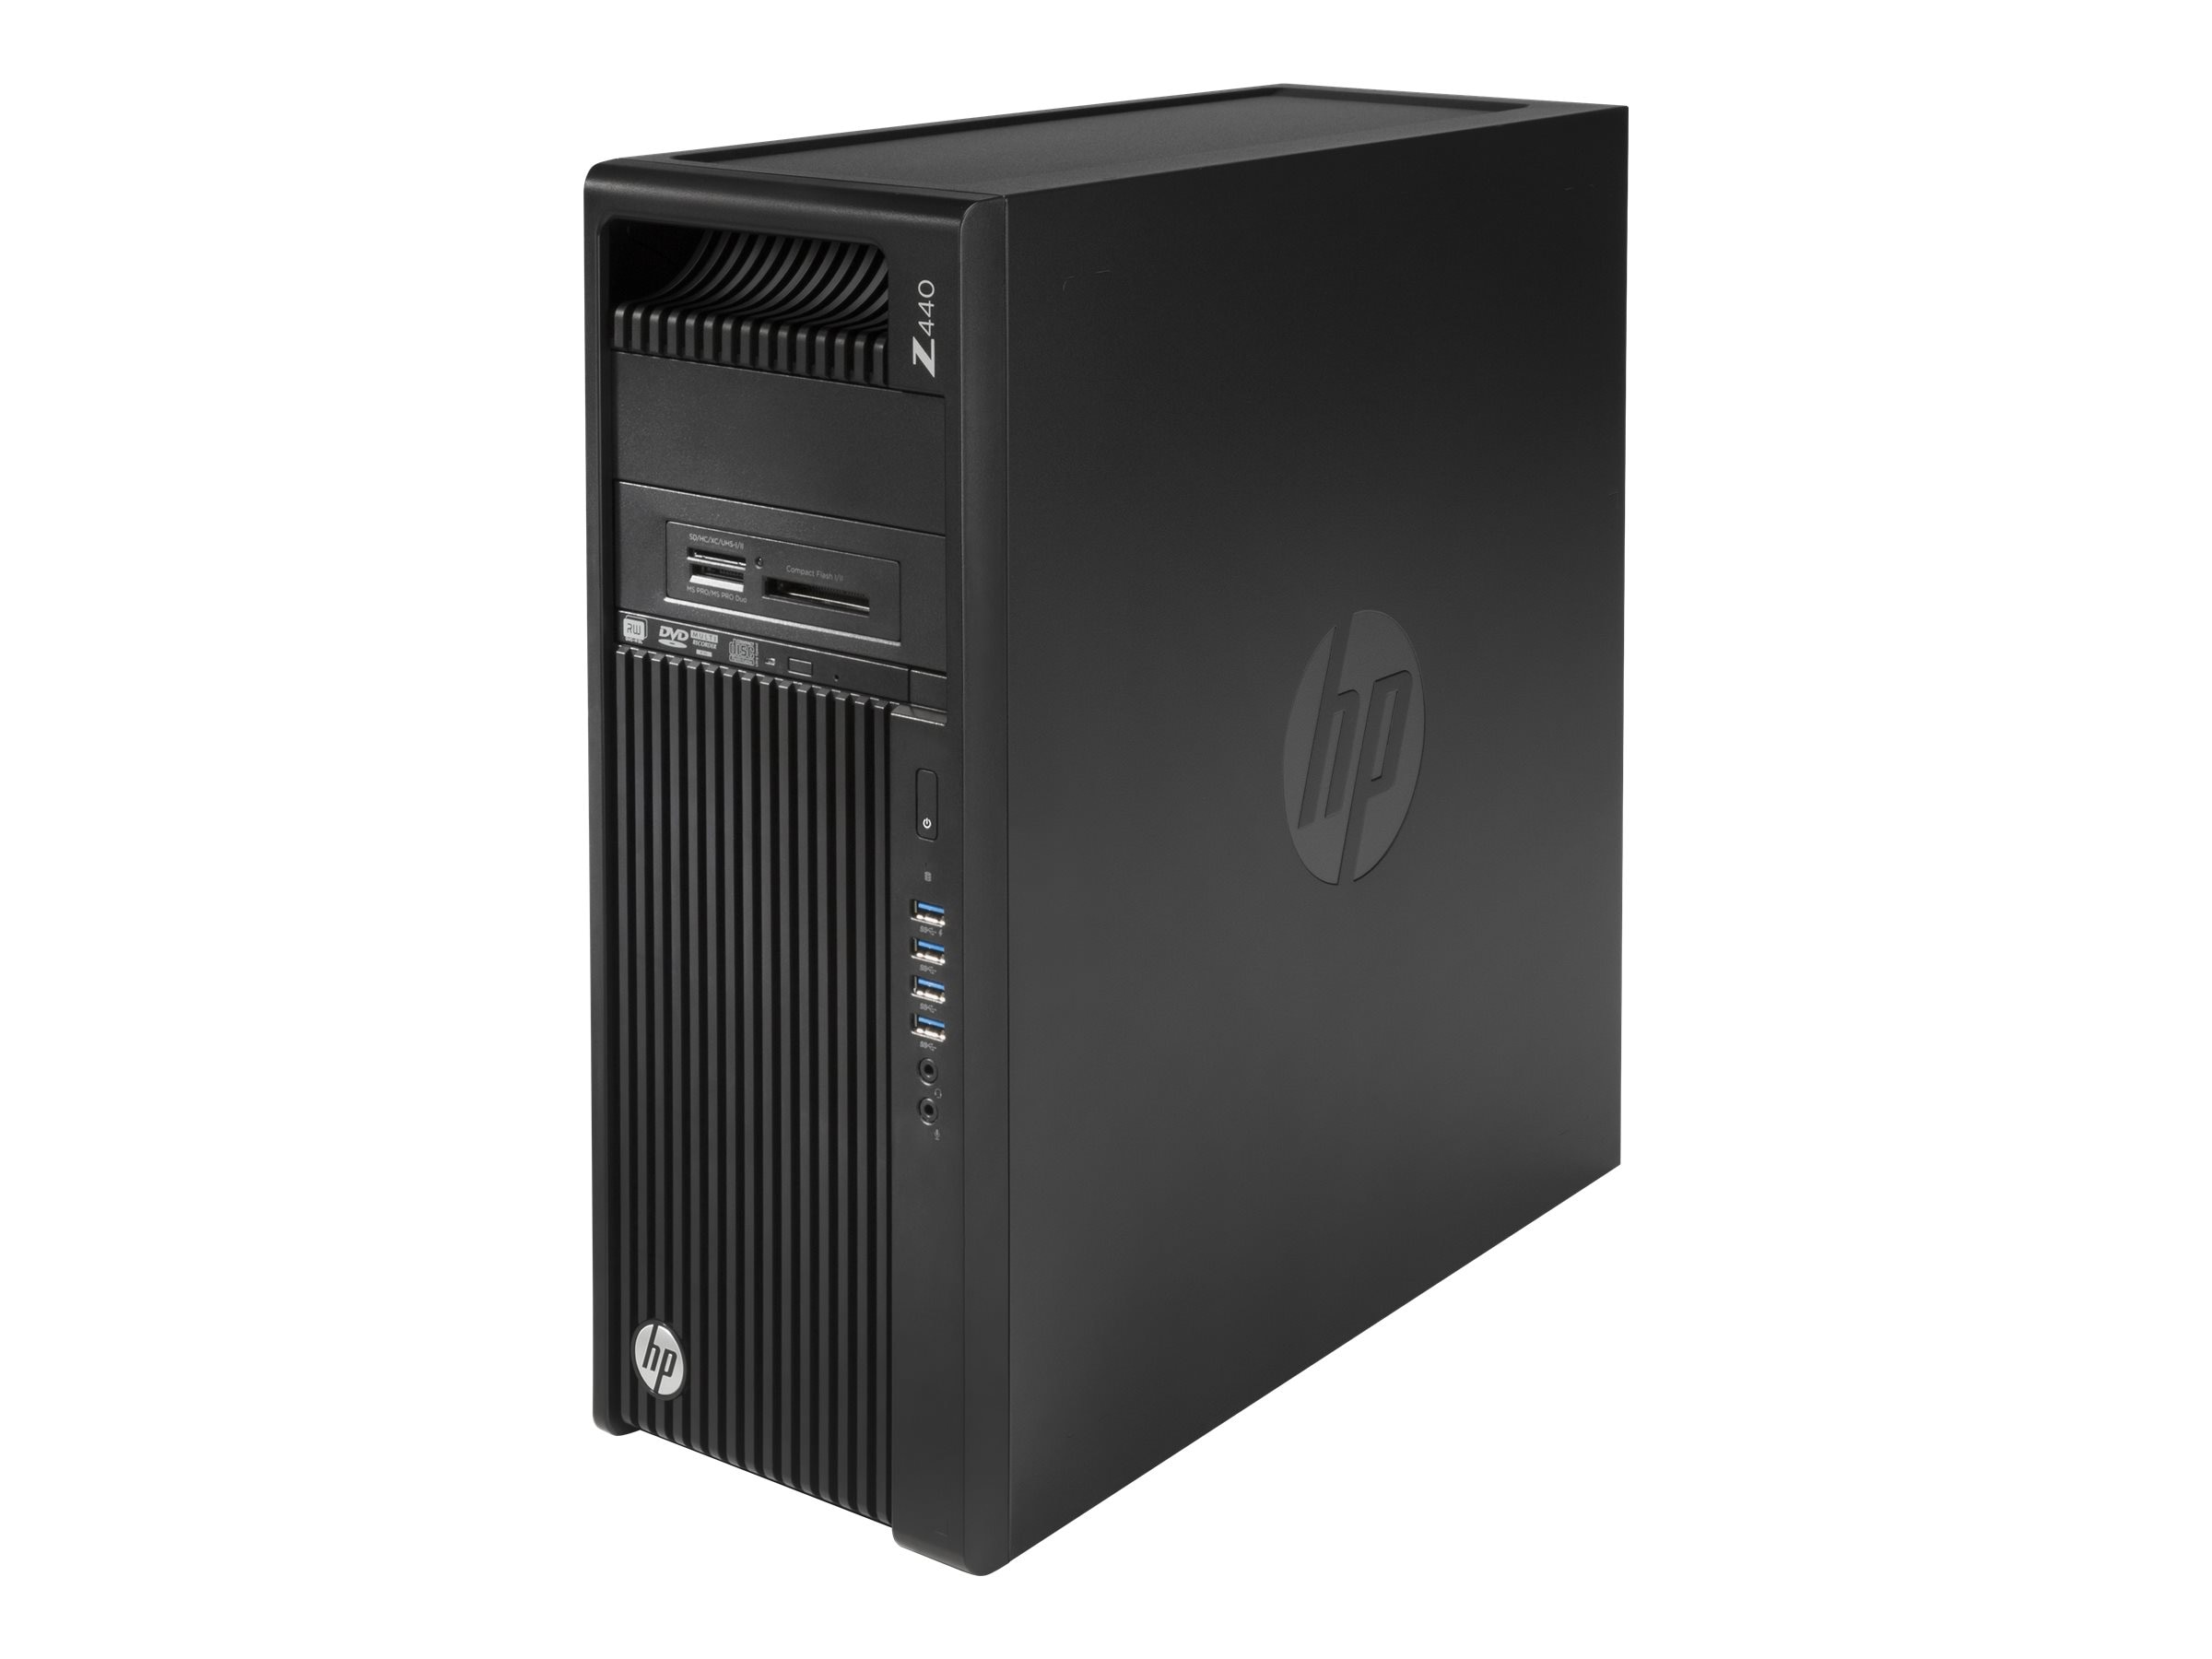 HP Smart Buy Z440 3.5GHz Xeon Microsoft Windows 7 Professional 64-bit Edition   Windows 8.1 Pro, F1M49UT#ABA, 17933350, Workstations